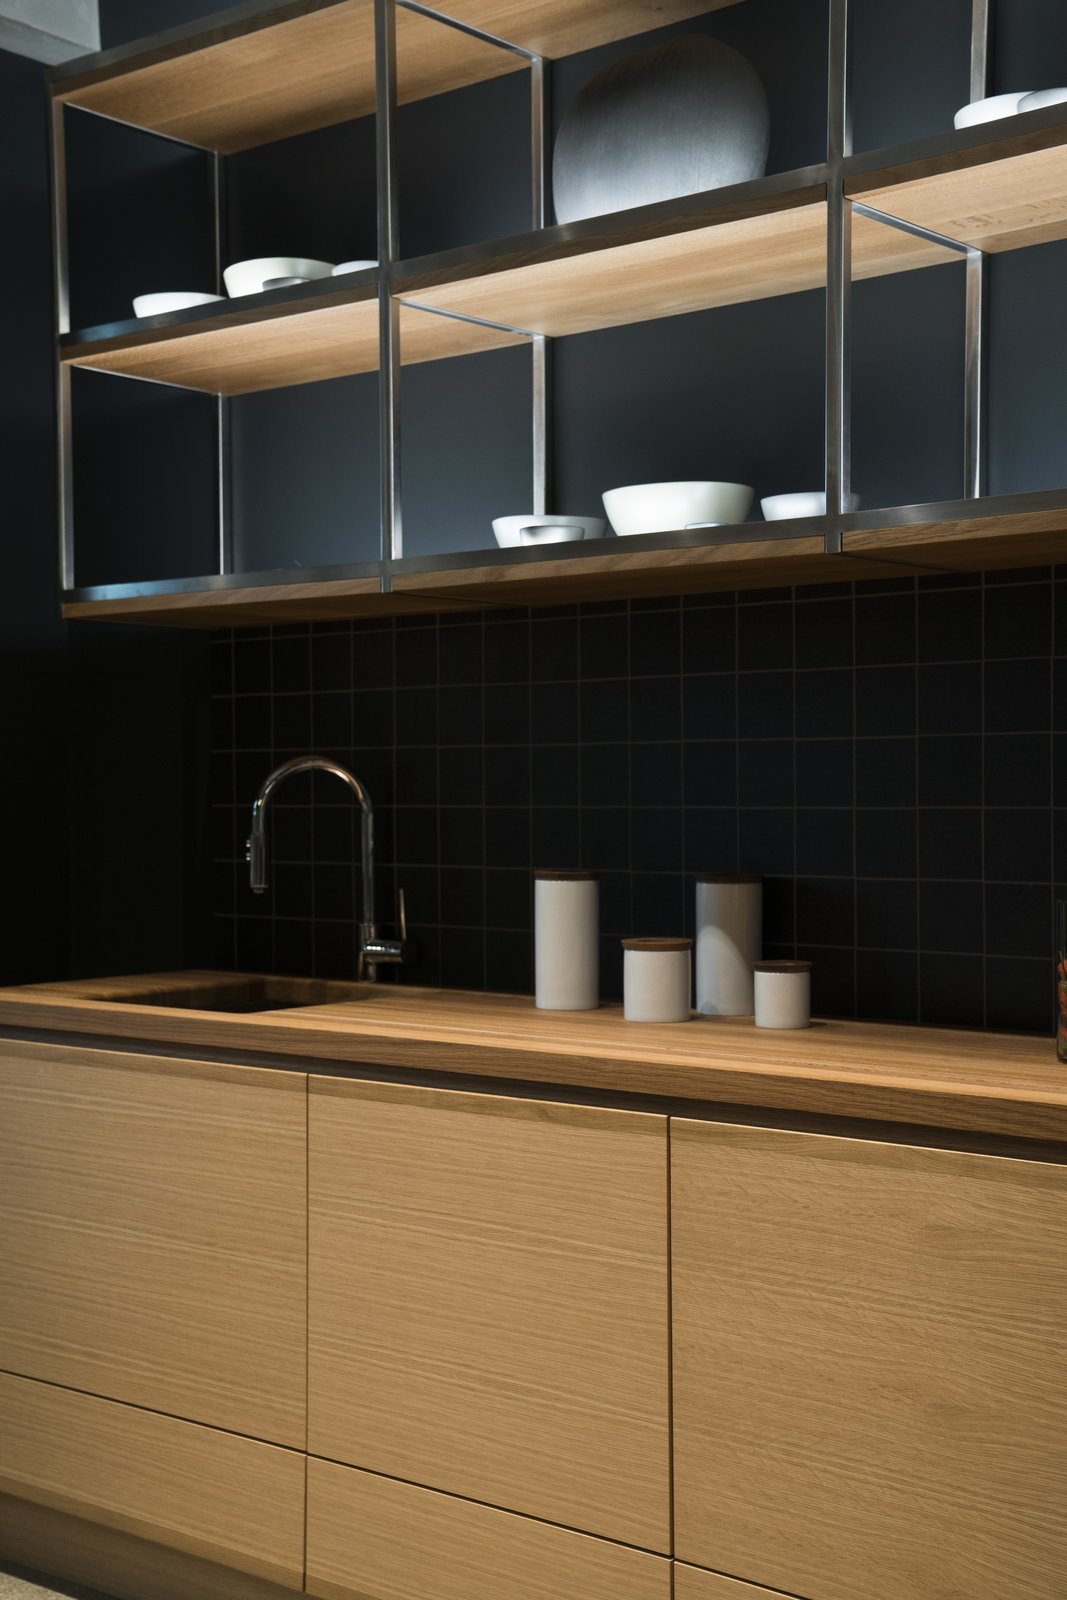 Fisher & Paykel has created a home-like environment for guests, allowing for a personal, human experience.